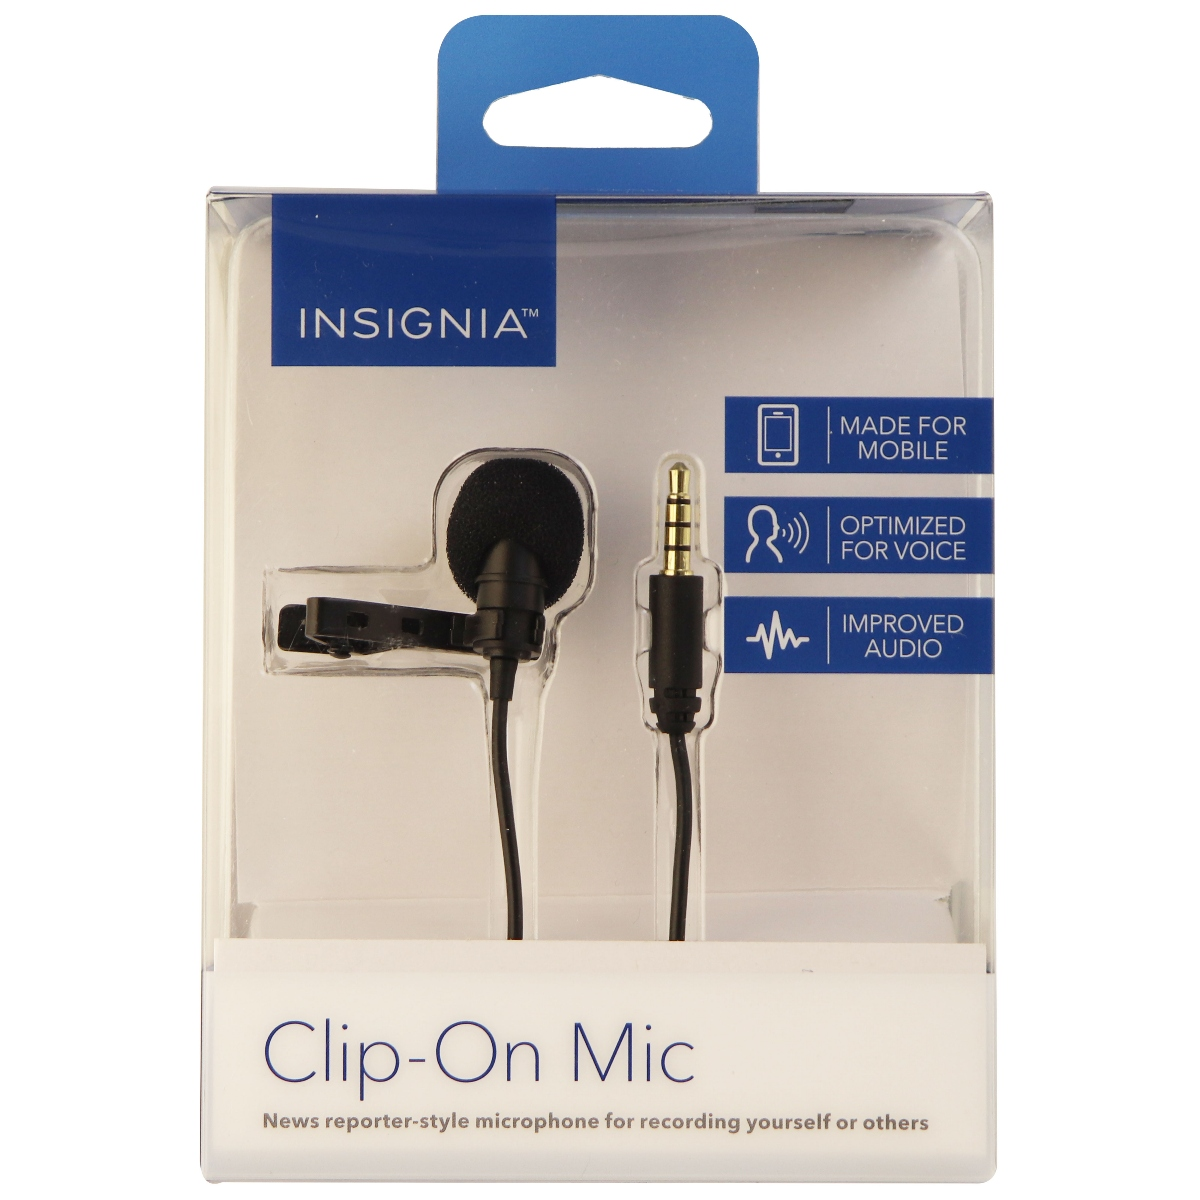 Insignia Clip on Mic Made for Mobile, Optimized for Voice, Improved Audio, Black